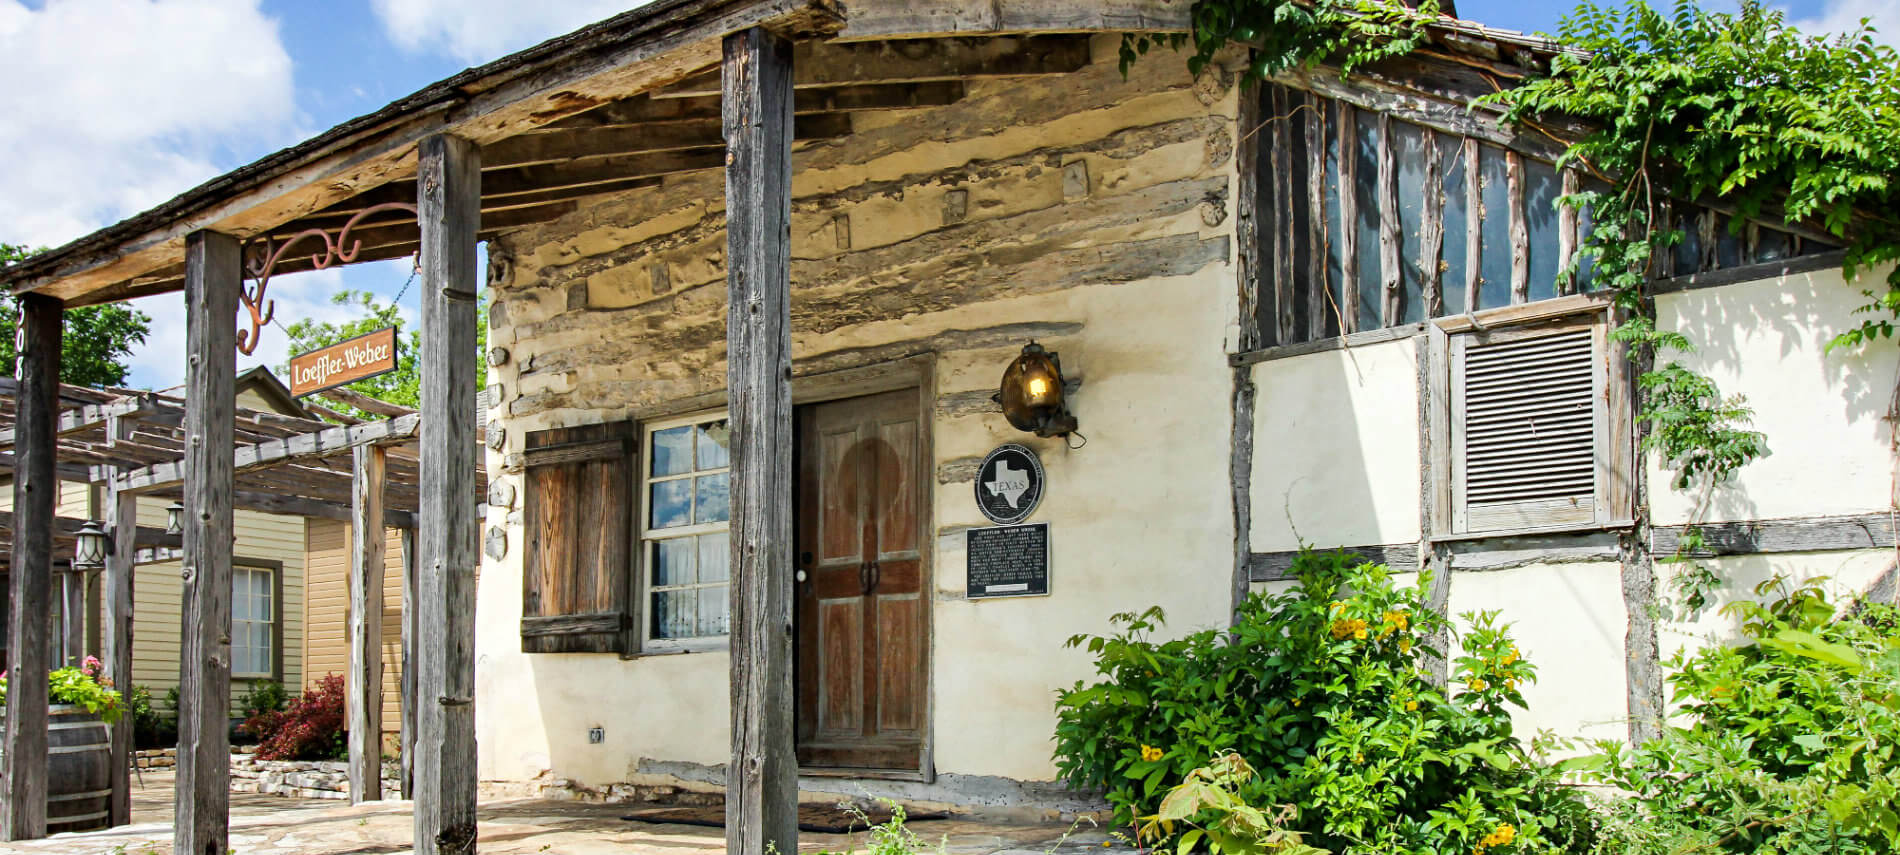 accommodations fredericksburg tx log the in swiss hill davos country cabins texas